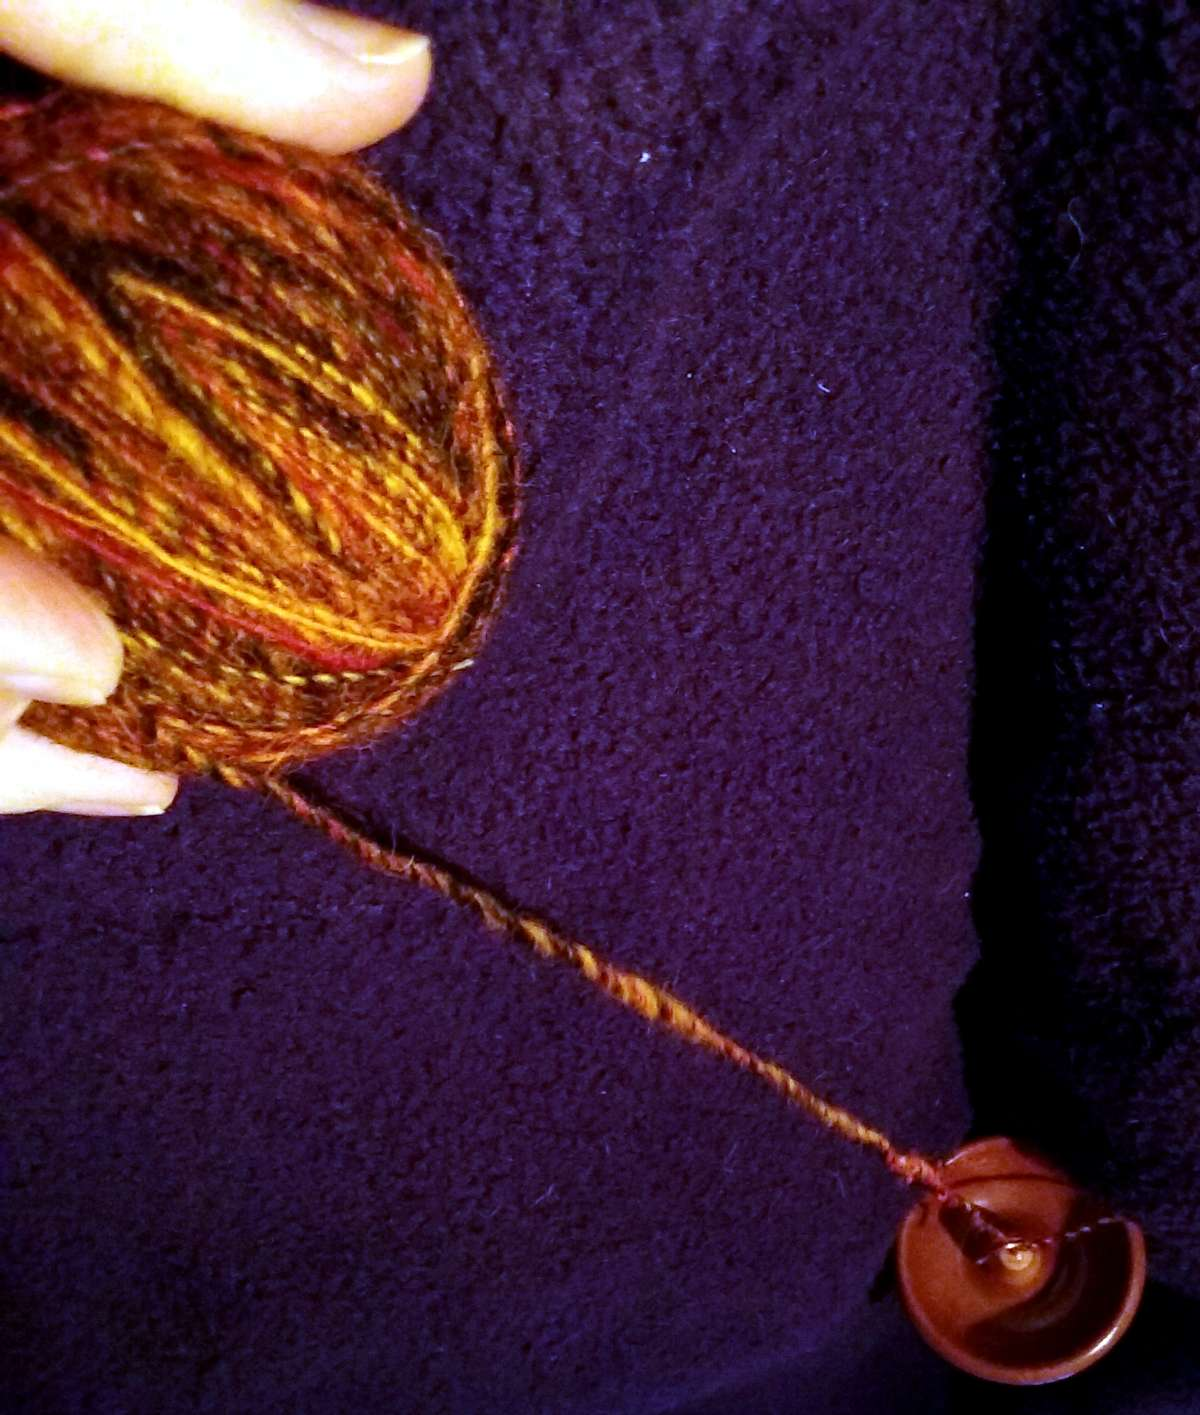 Join completed and spindle hanging from the plying ball.